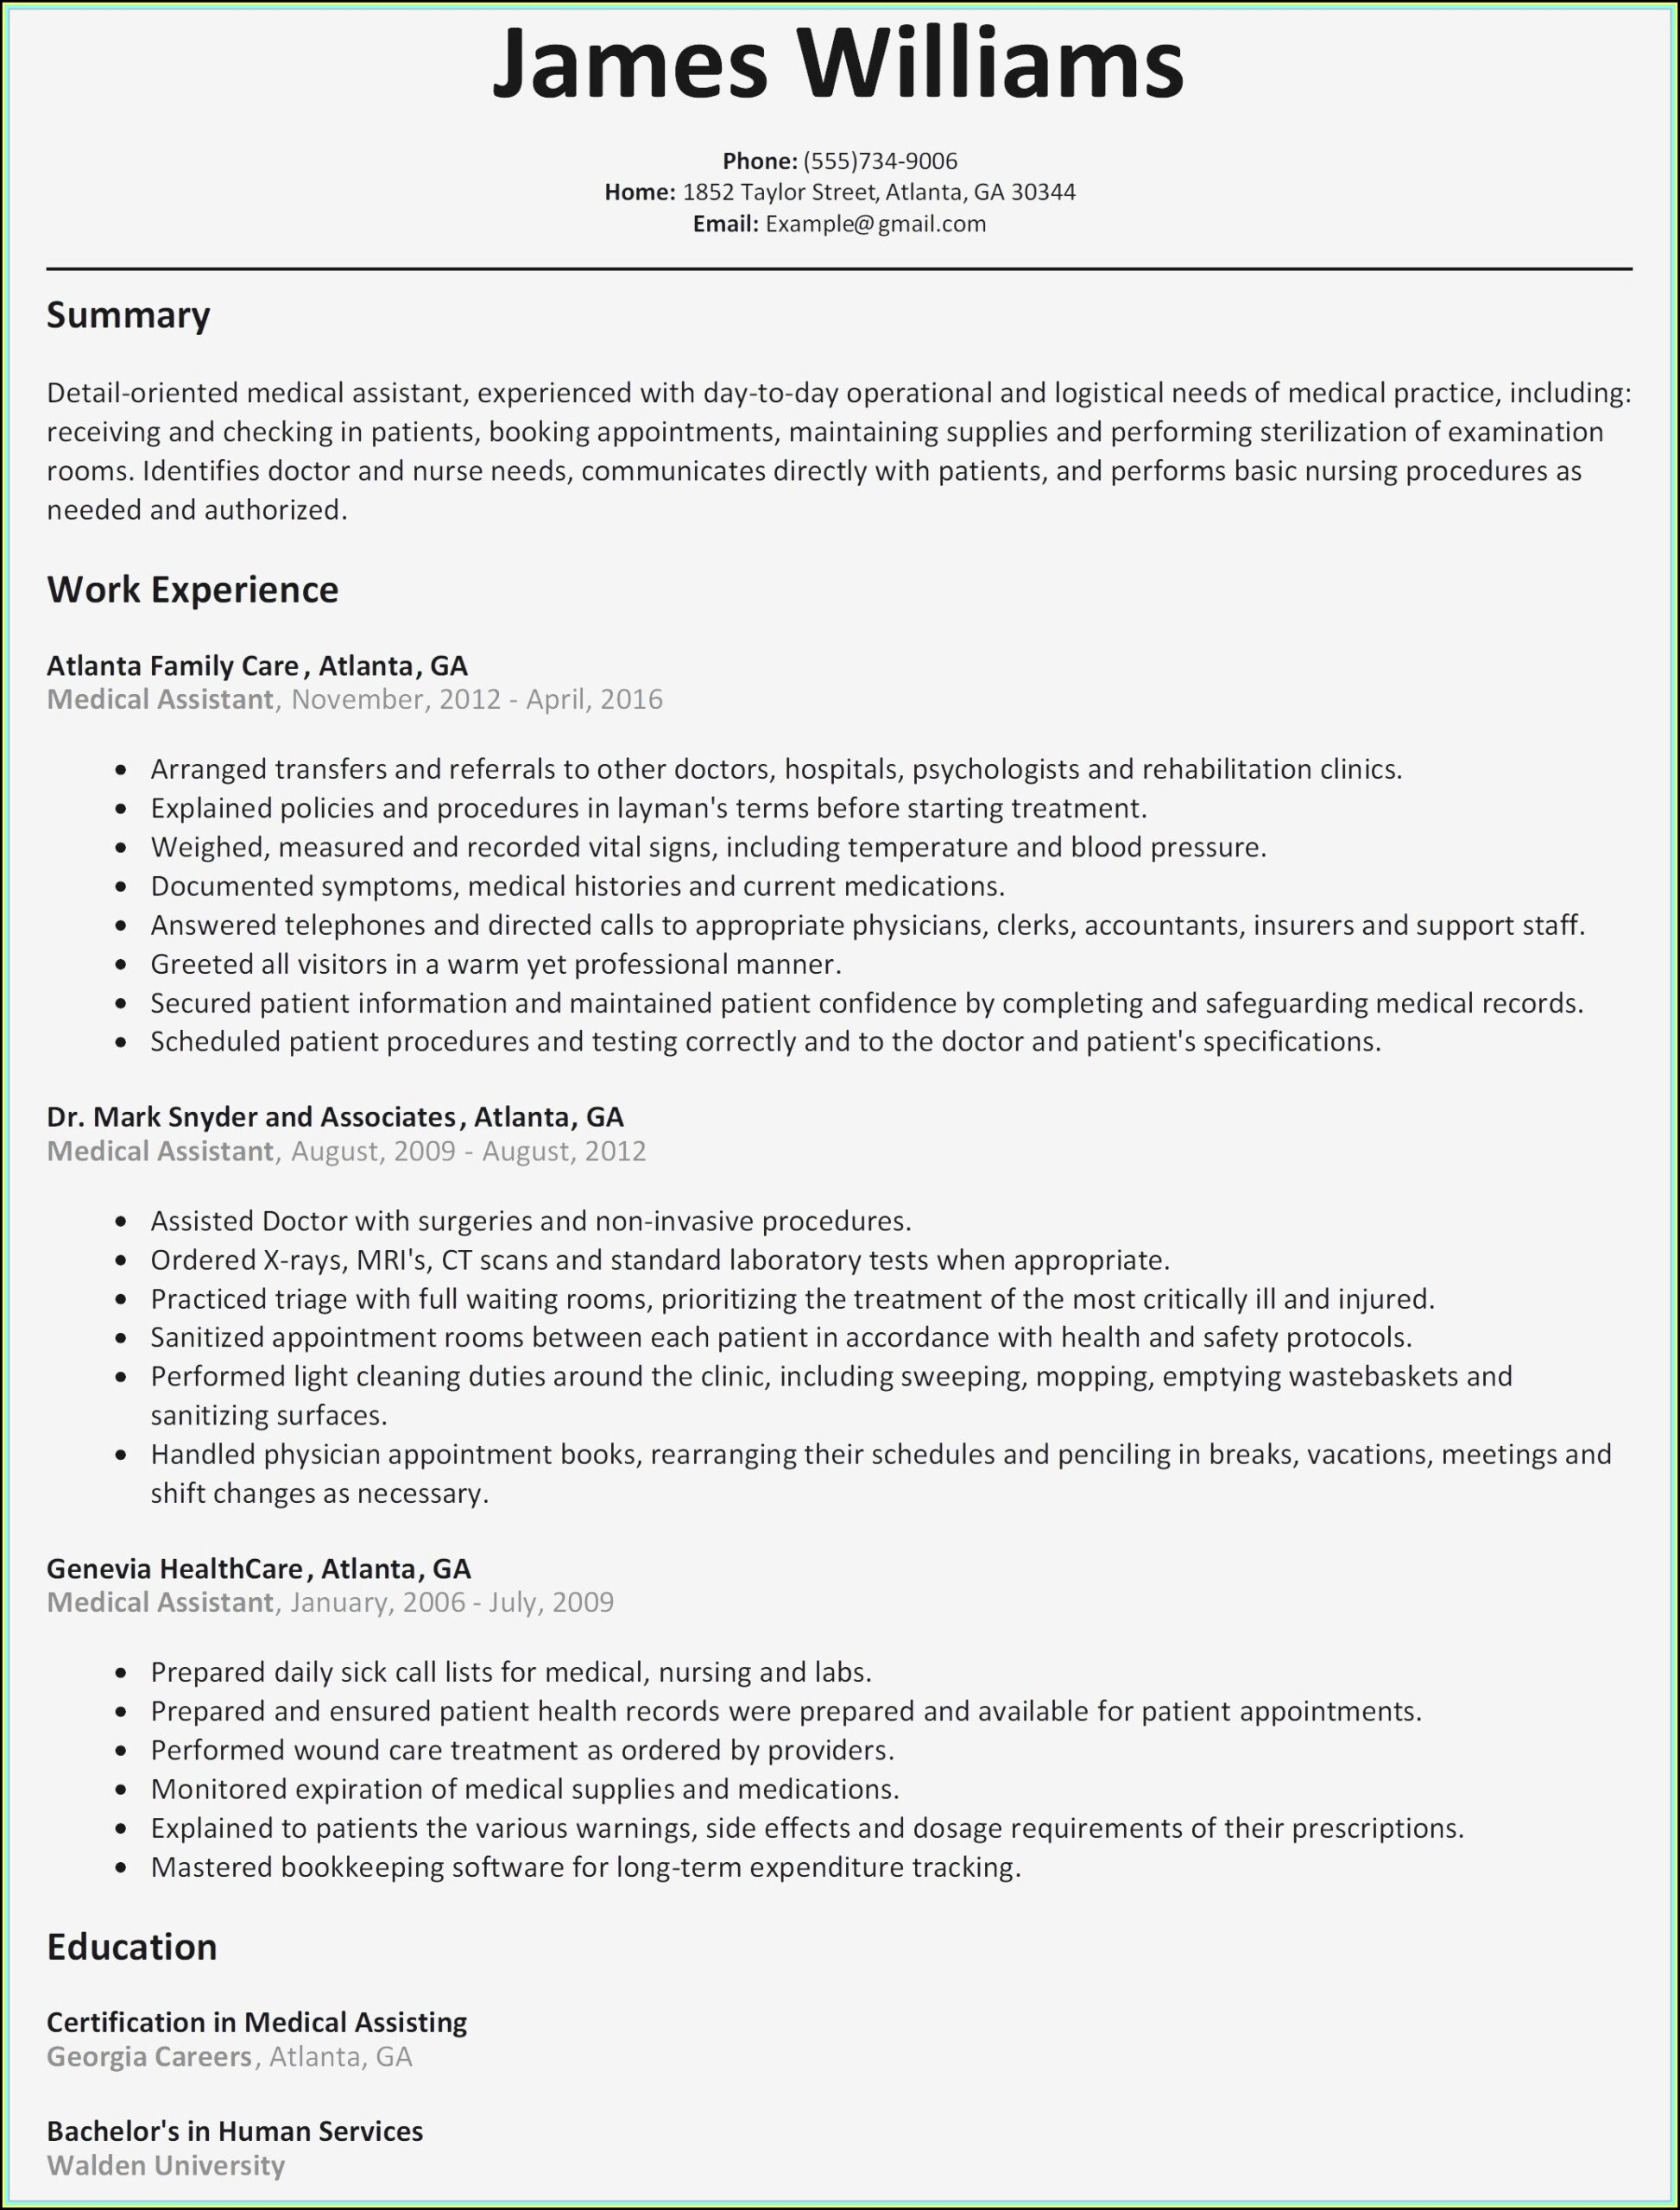 best resume writing services chicago us all industries nyc top dress sample for civil Resume Resume Writing Services Nyc